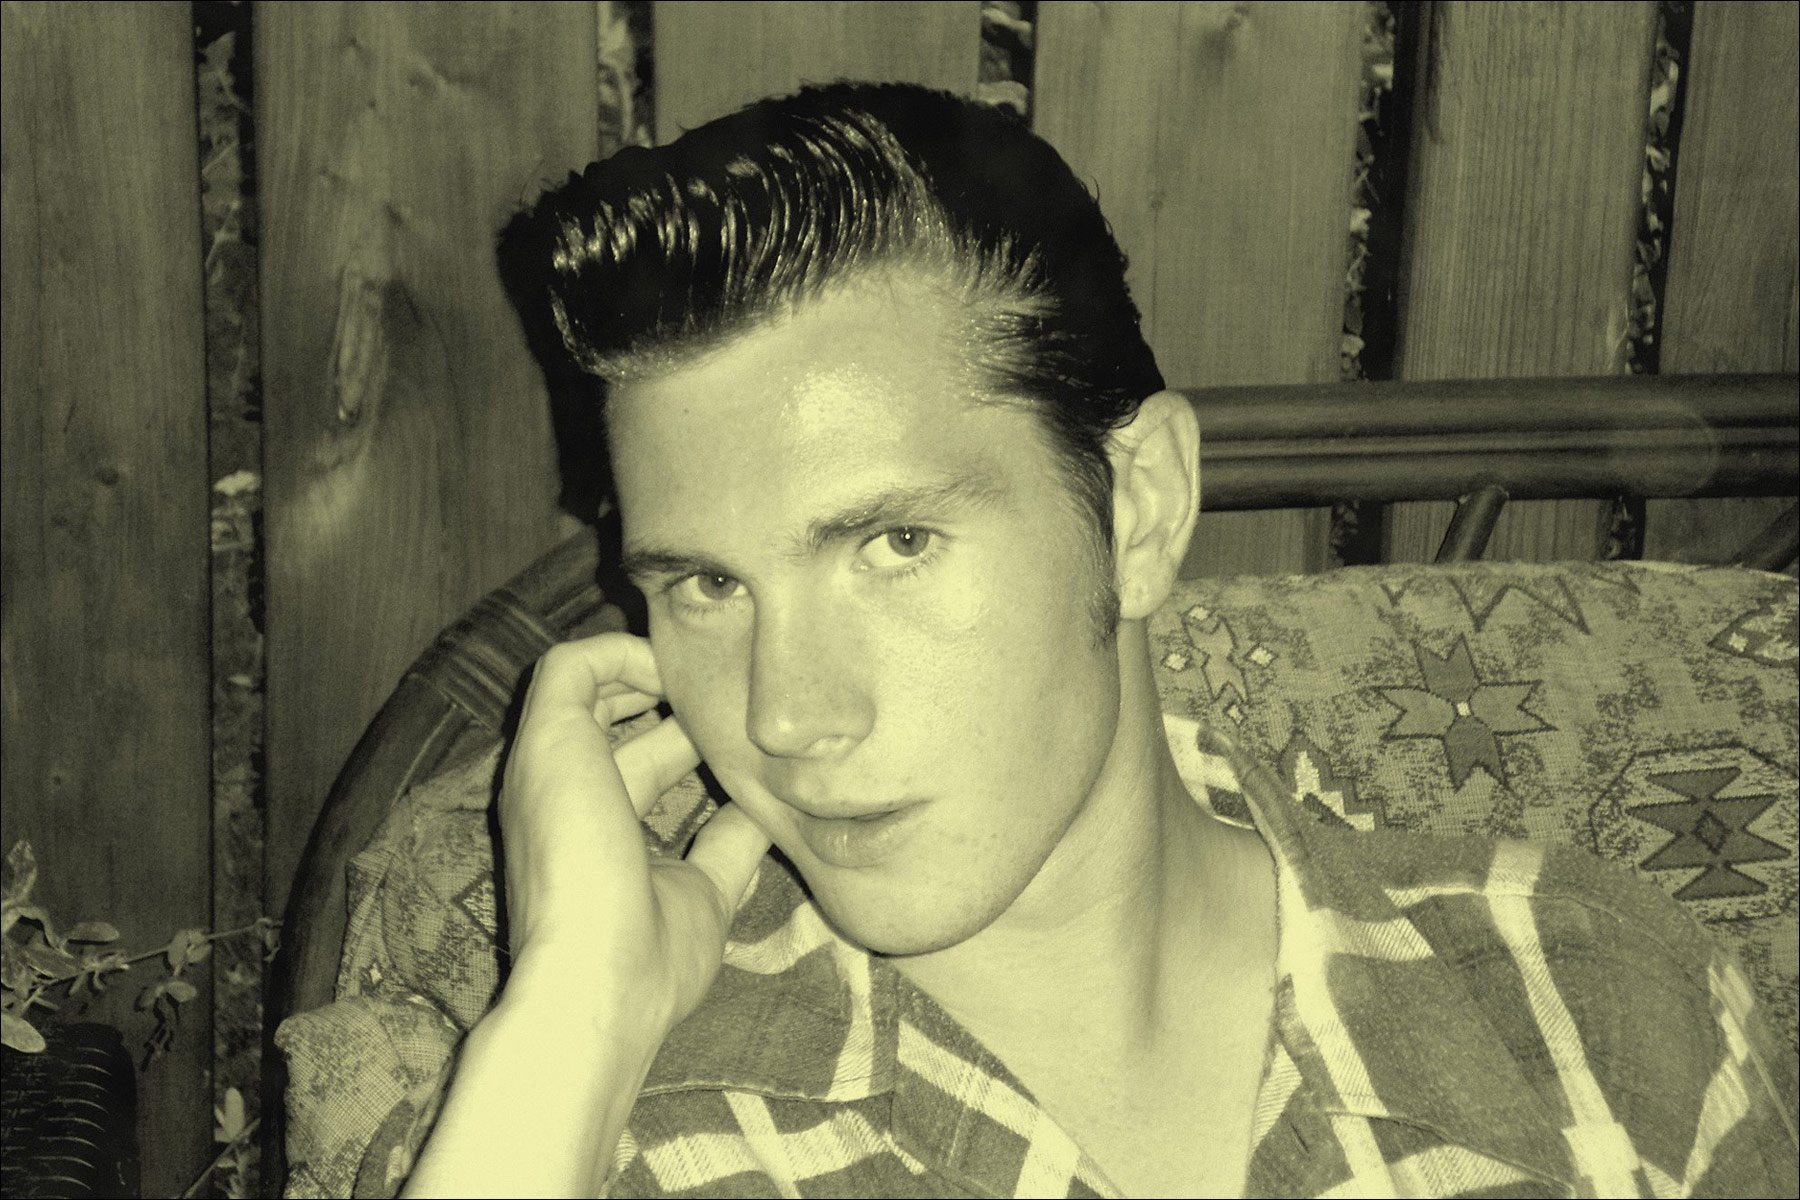 A B&W portrait of rockabilly performer Lew Phillips. Ponyboy magazine NY.